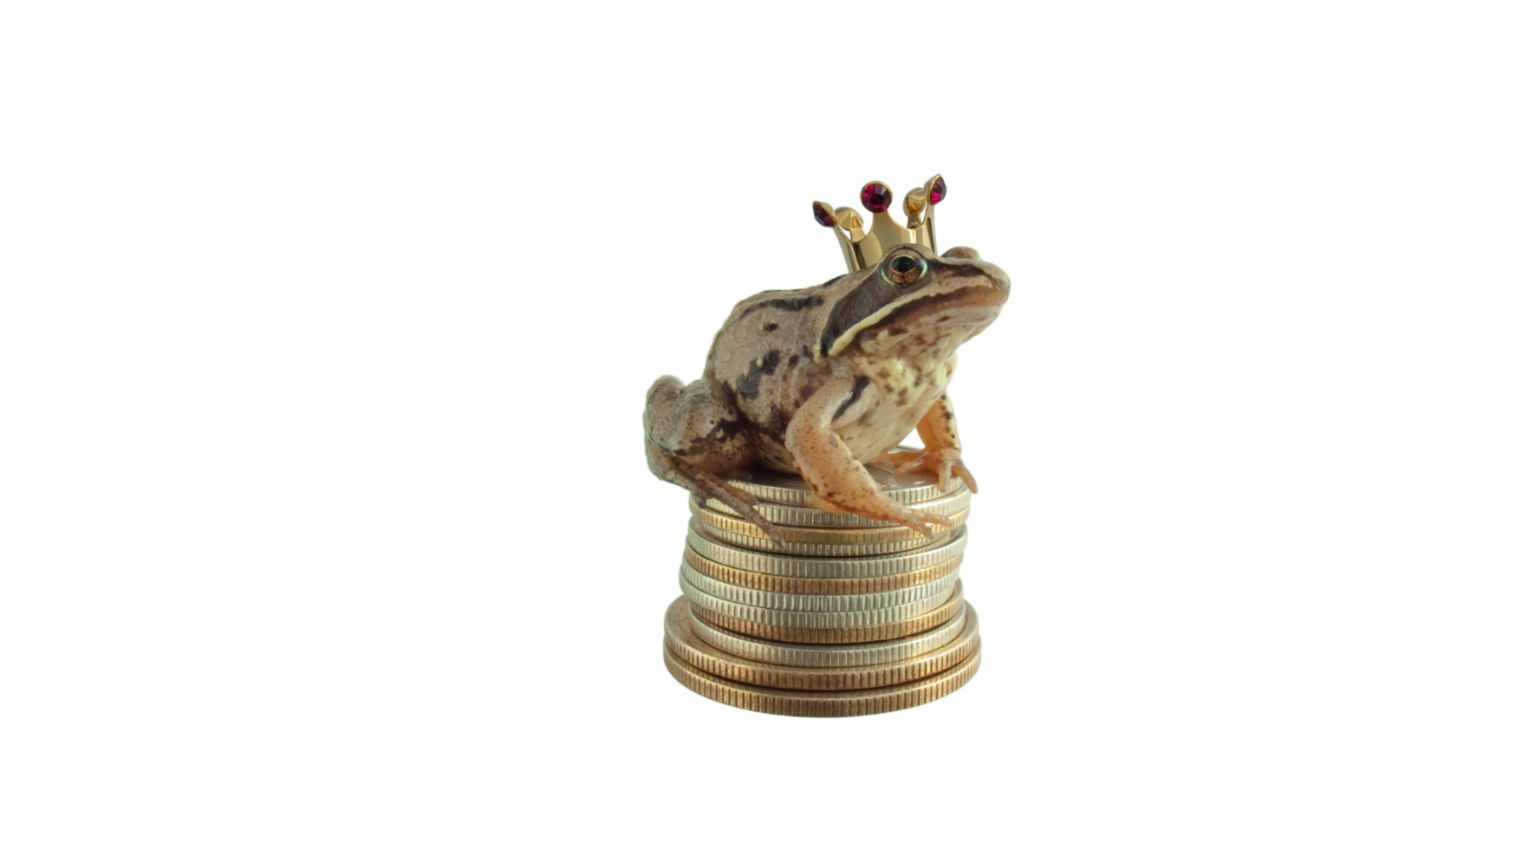 Frog king on coins